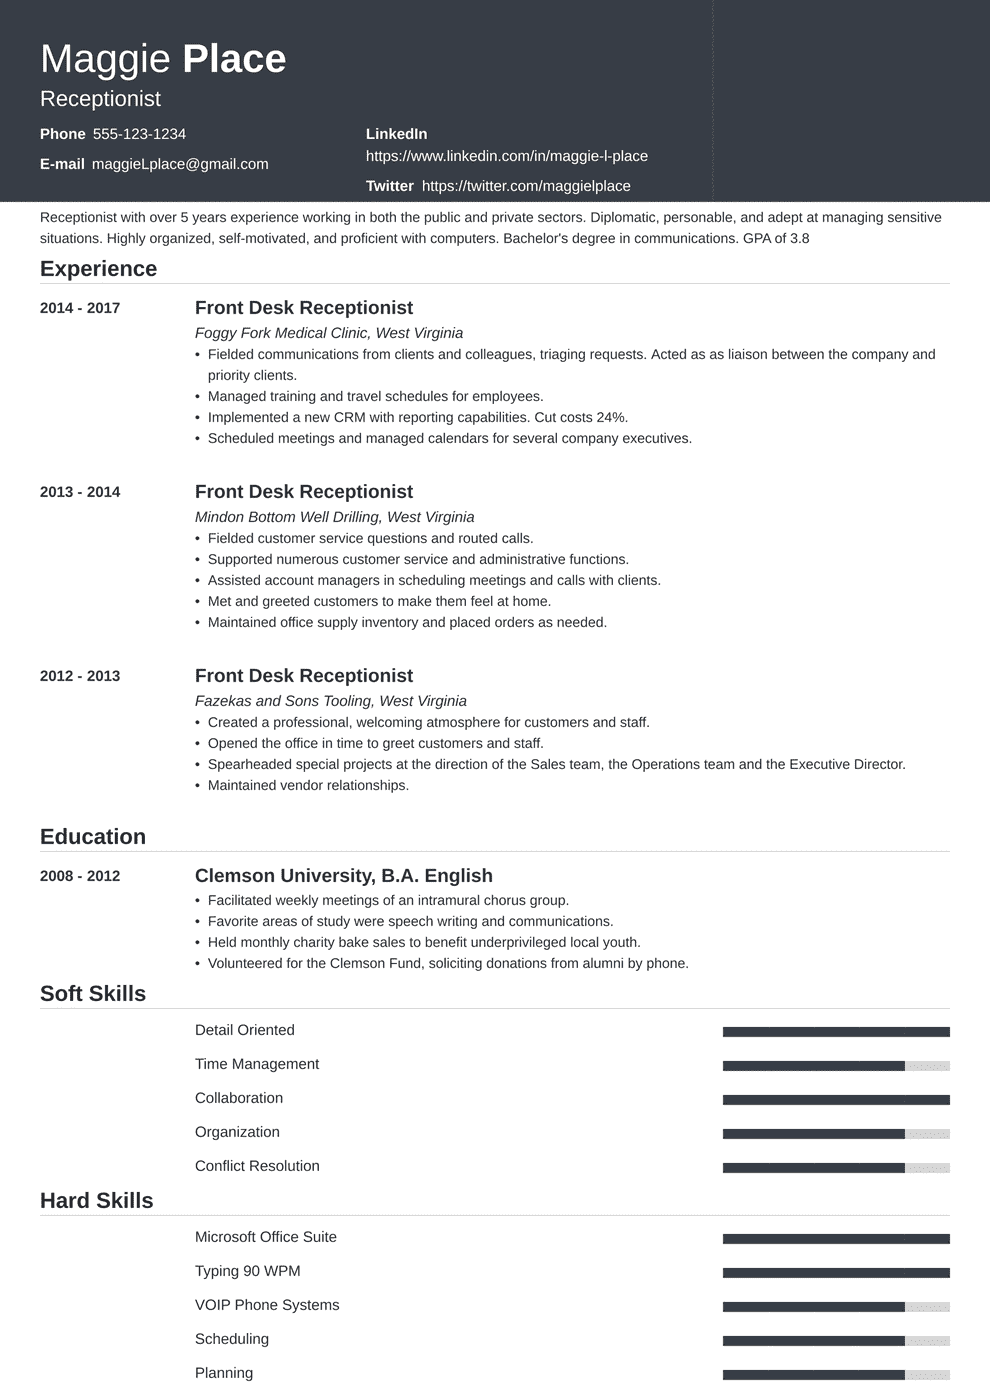 Receptionist Resume Examples (Skills, Job Description & Tips)